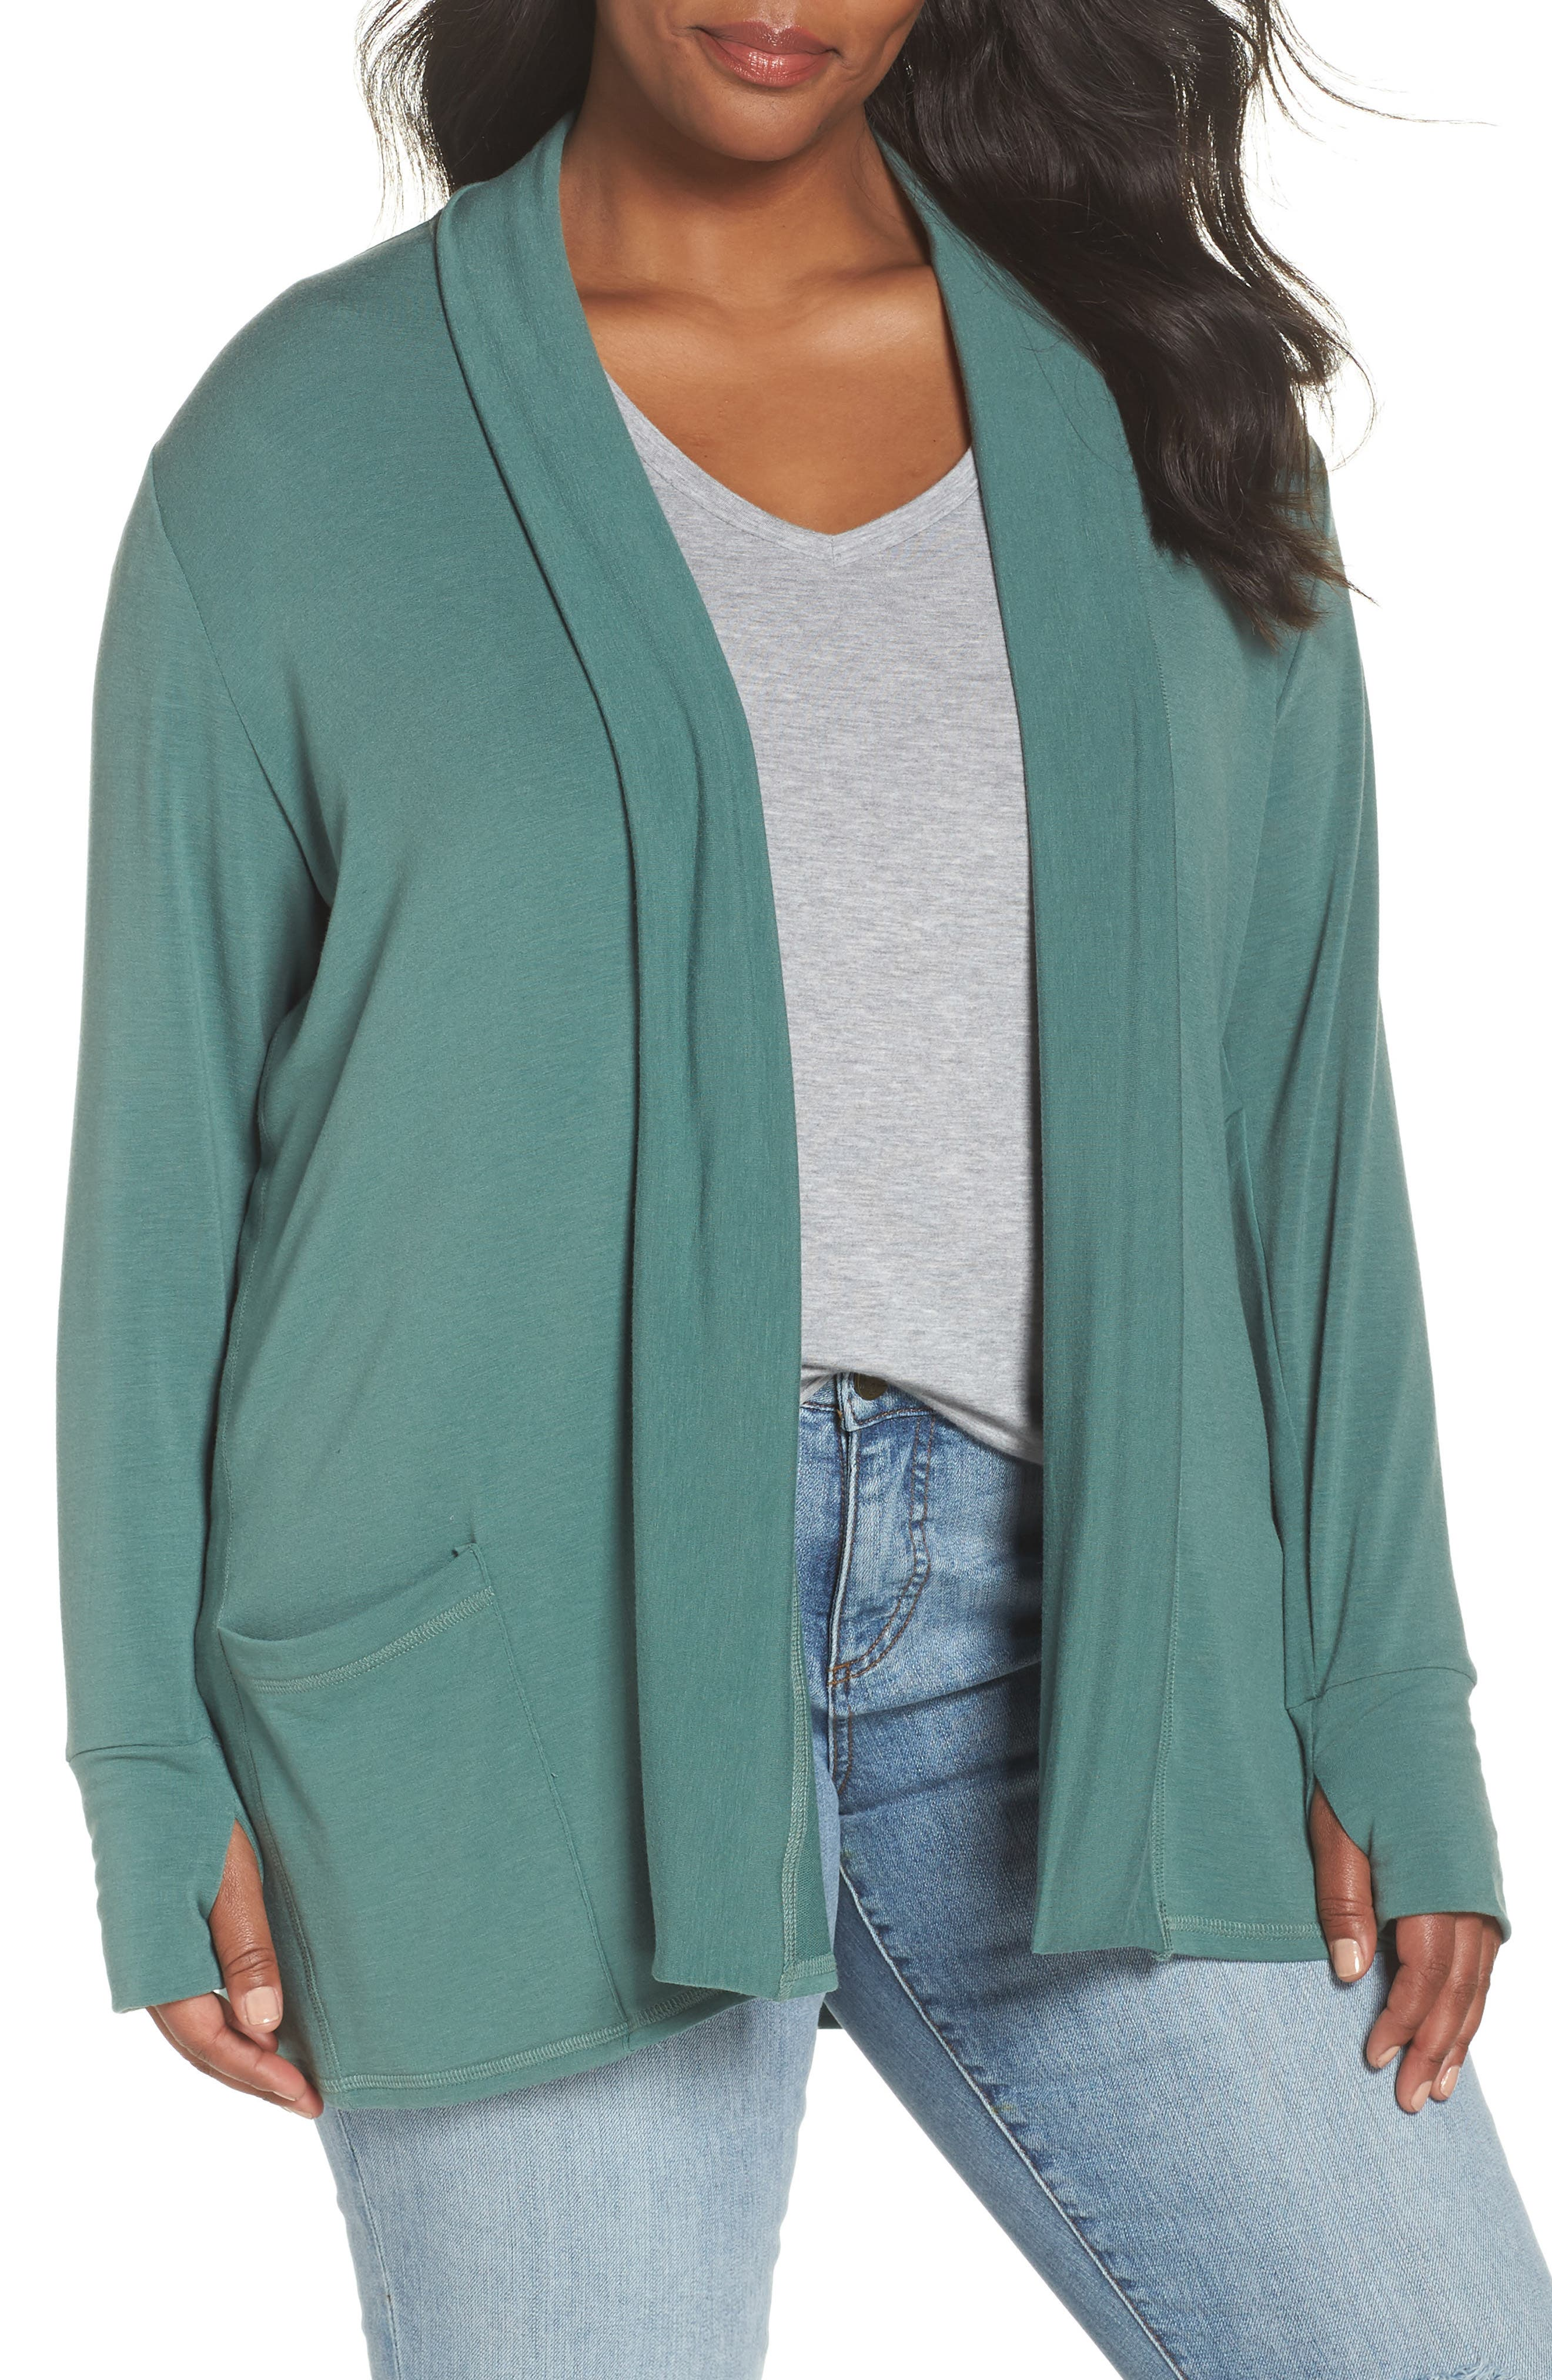 Off-Duty French Terry Cardigan,                             Main thumbnail 1, color,                             310